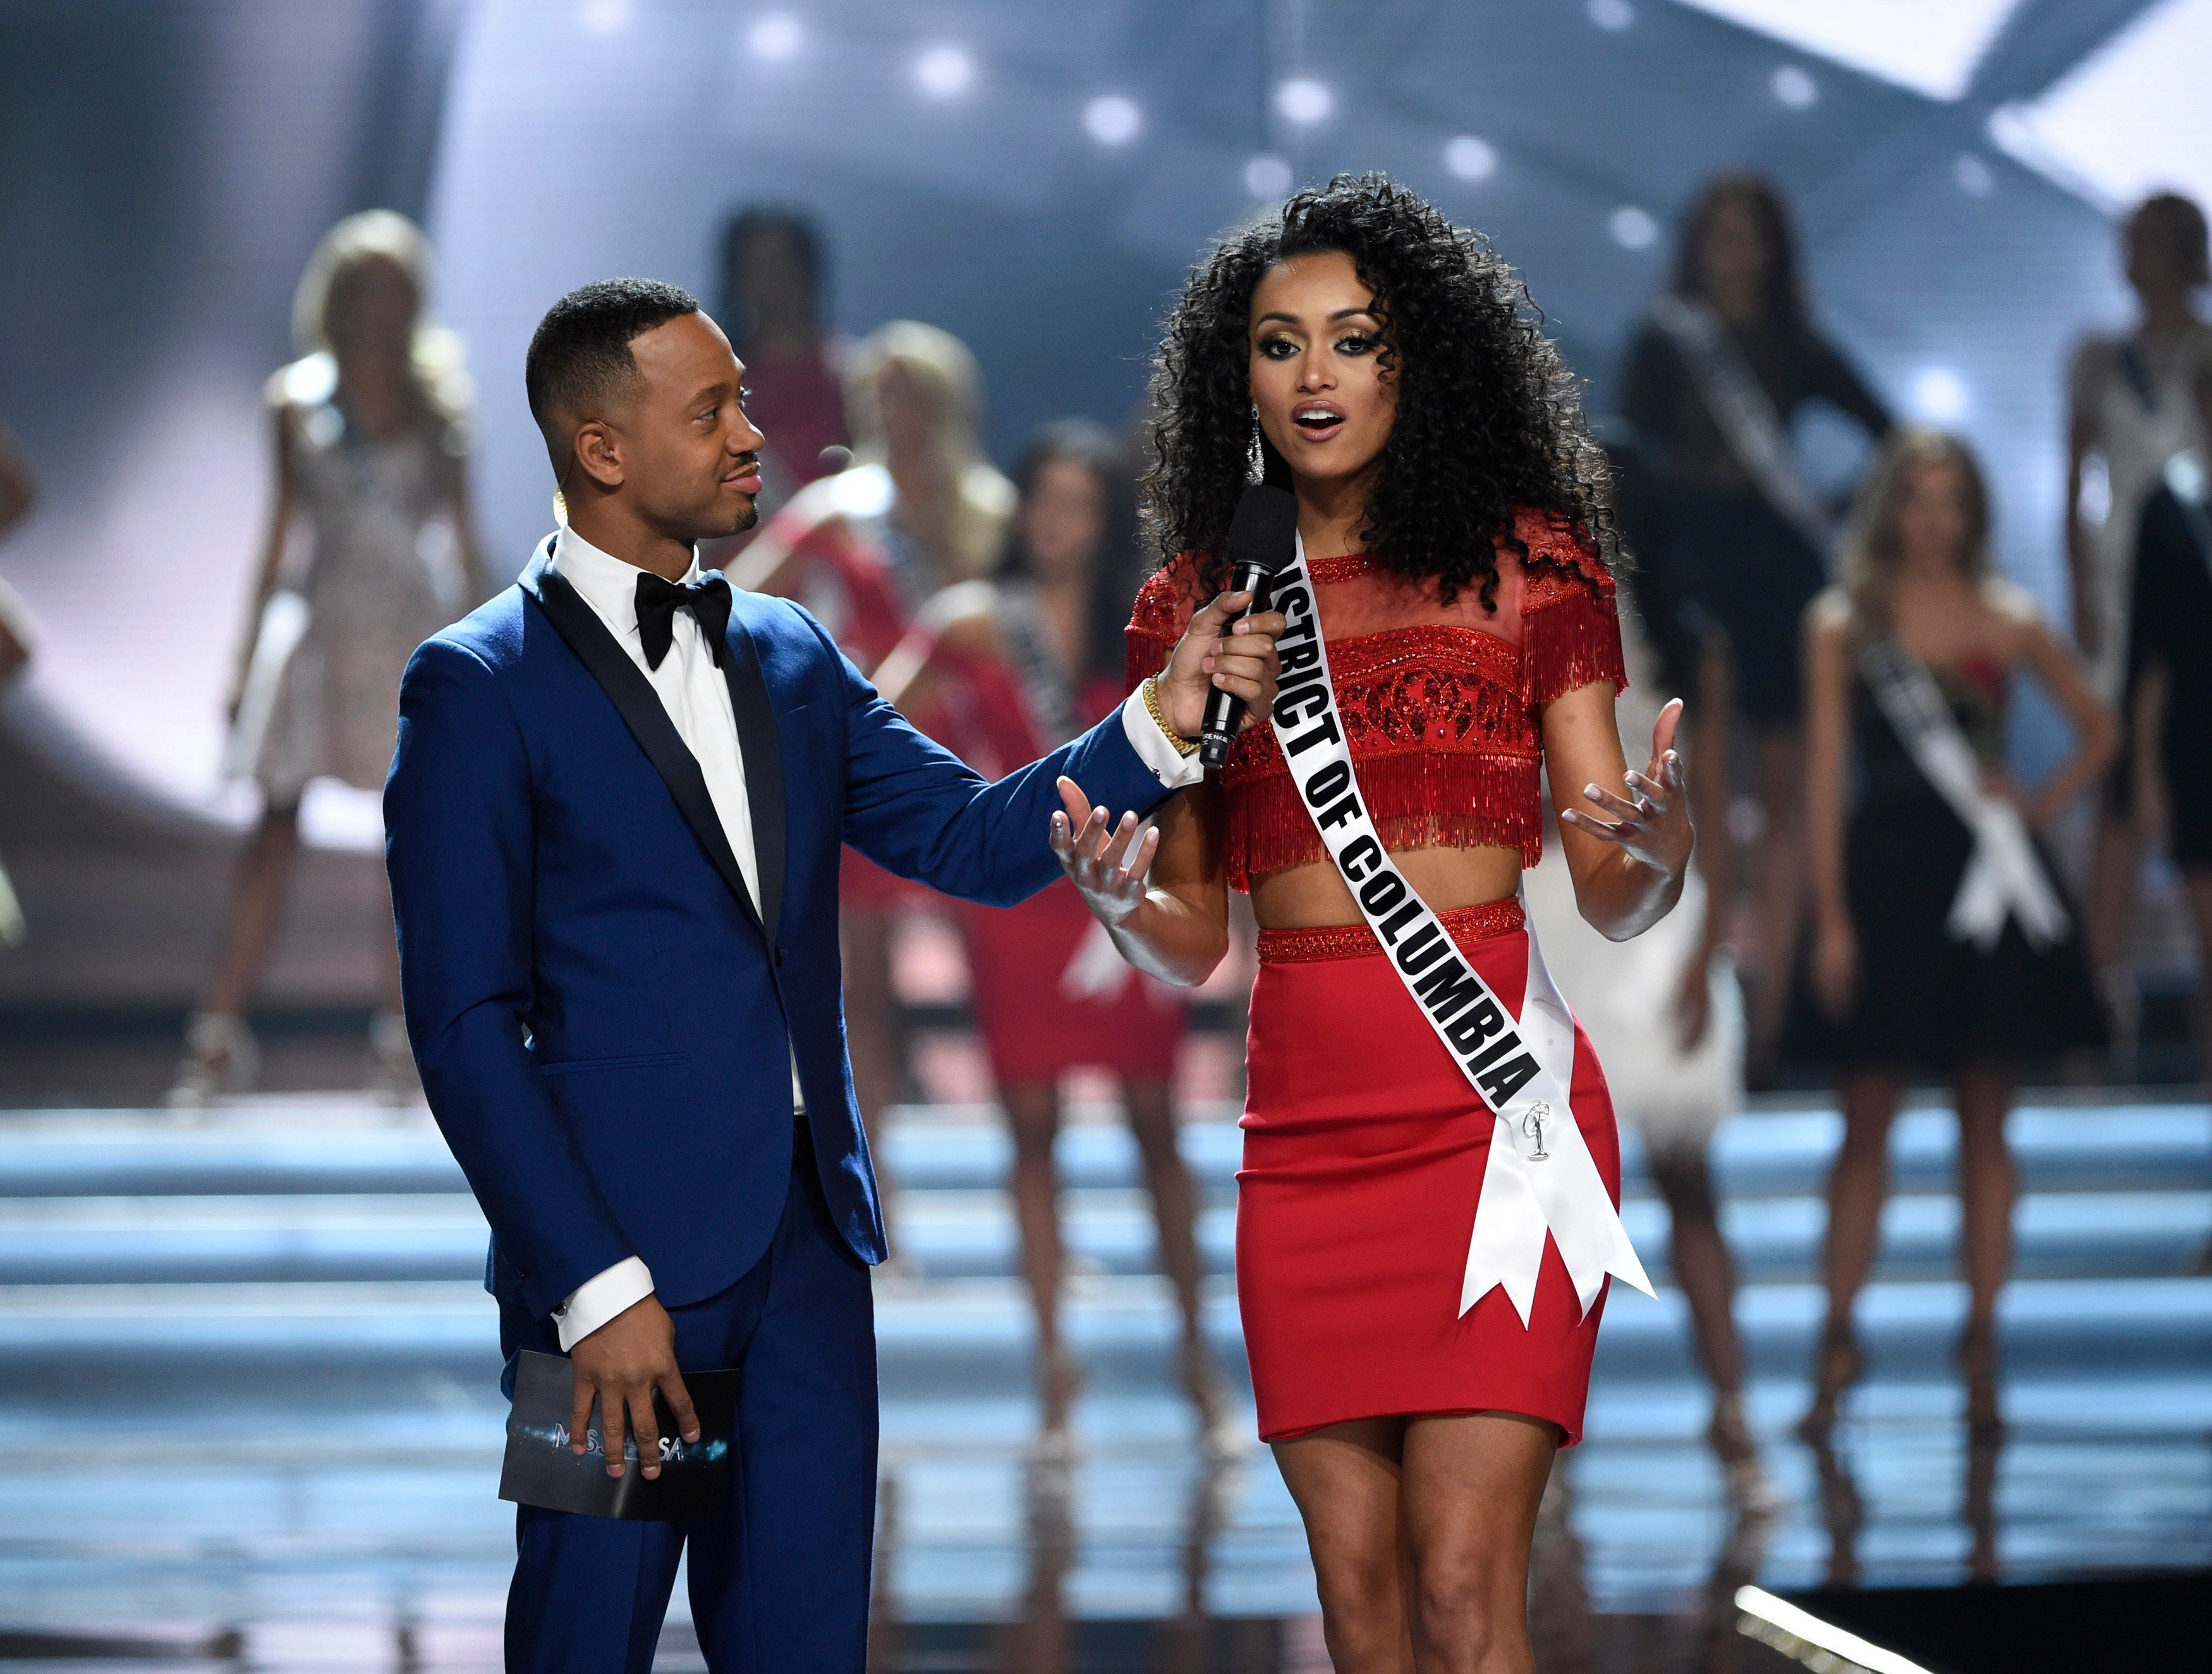 Miss USA co-host Terrence J interviews Miss District of Columbia Kara McCullough, who won but then immediately faced criticis